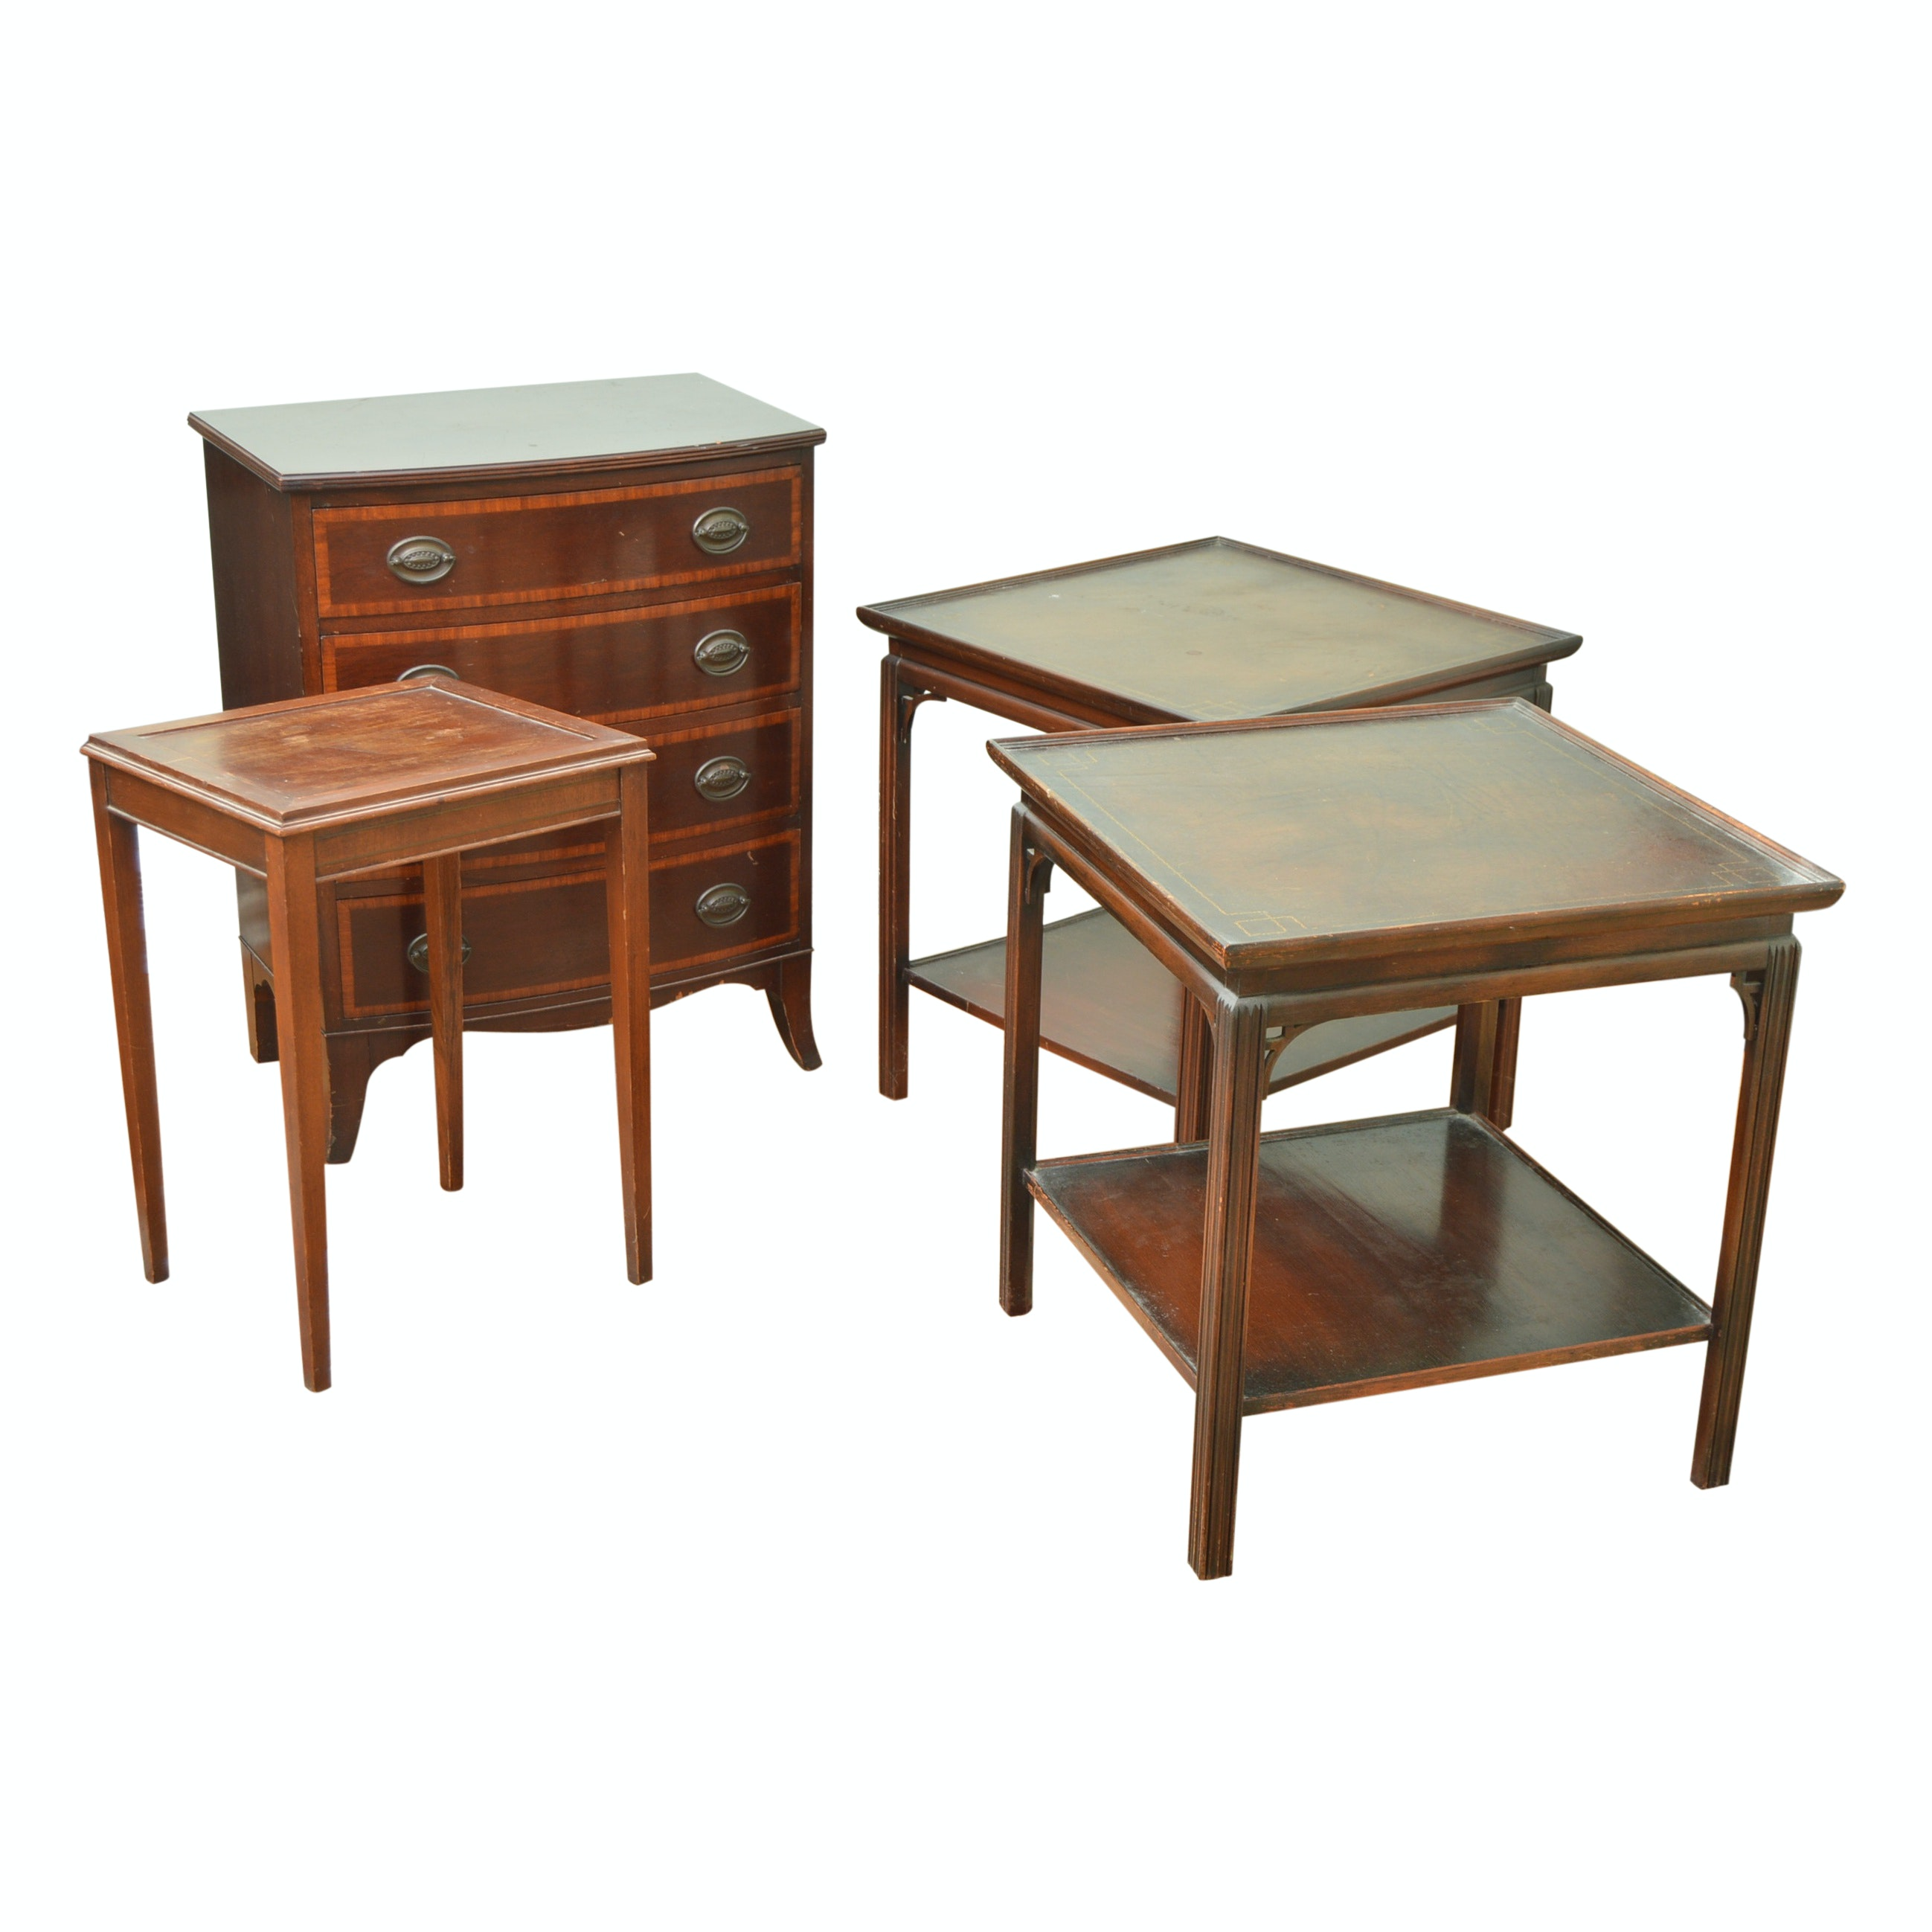 Vintage Furniture with Hepplewhite Style Chest